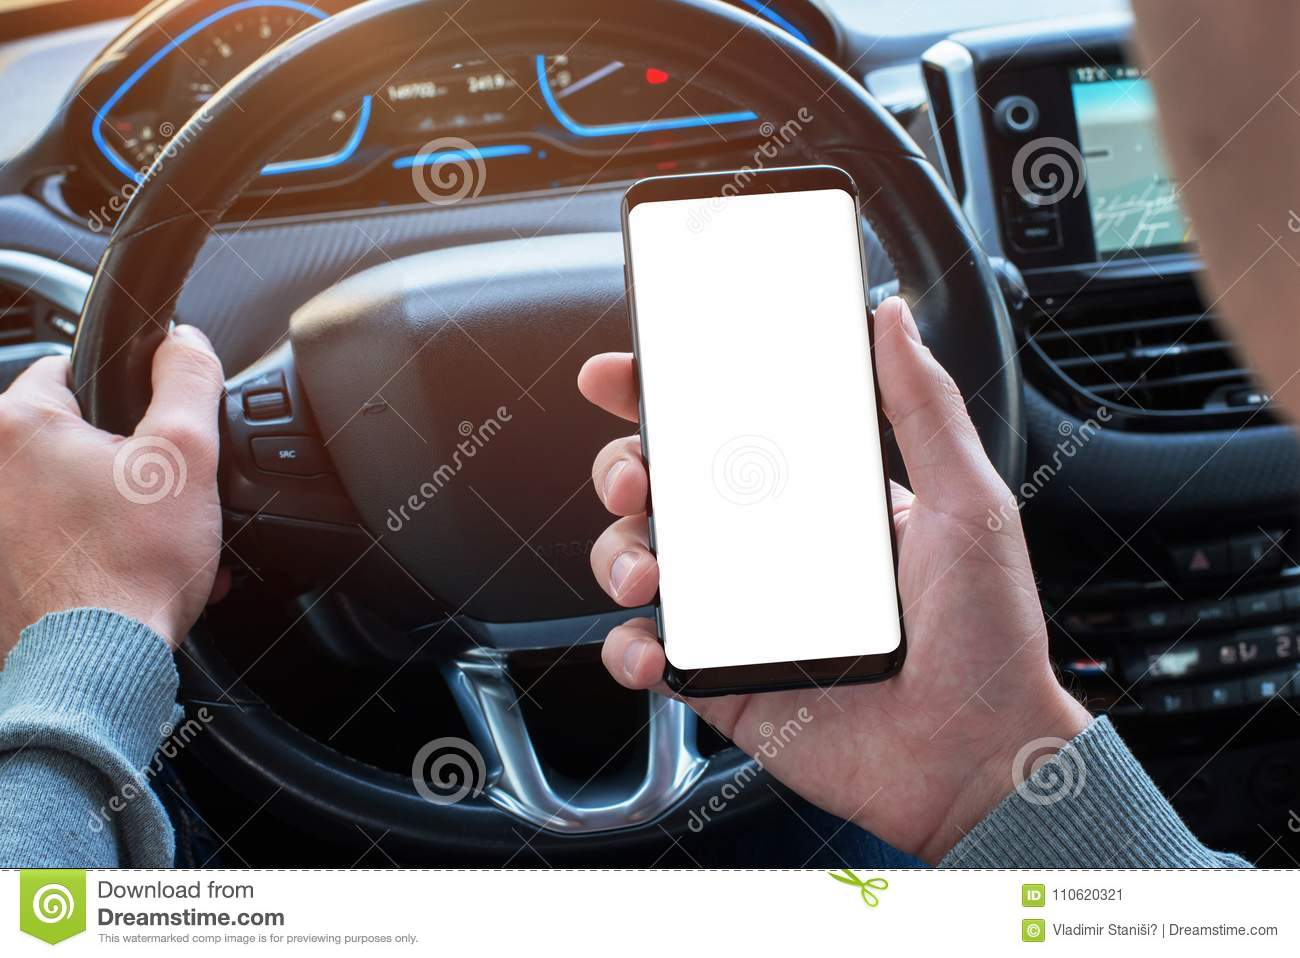 Man holding smartphone in car with isolated, white display for mockup, app, or web site design promotion